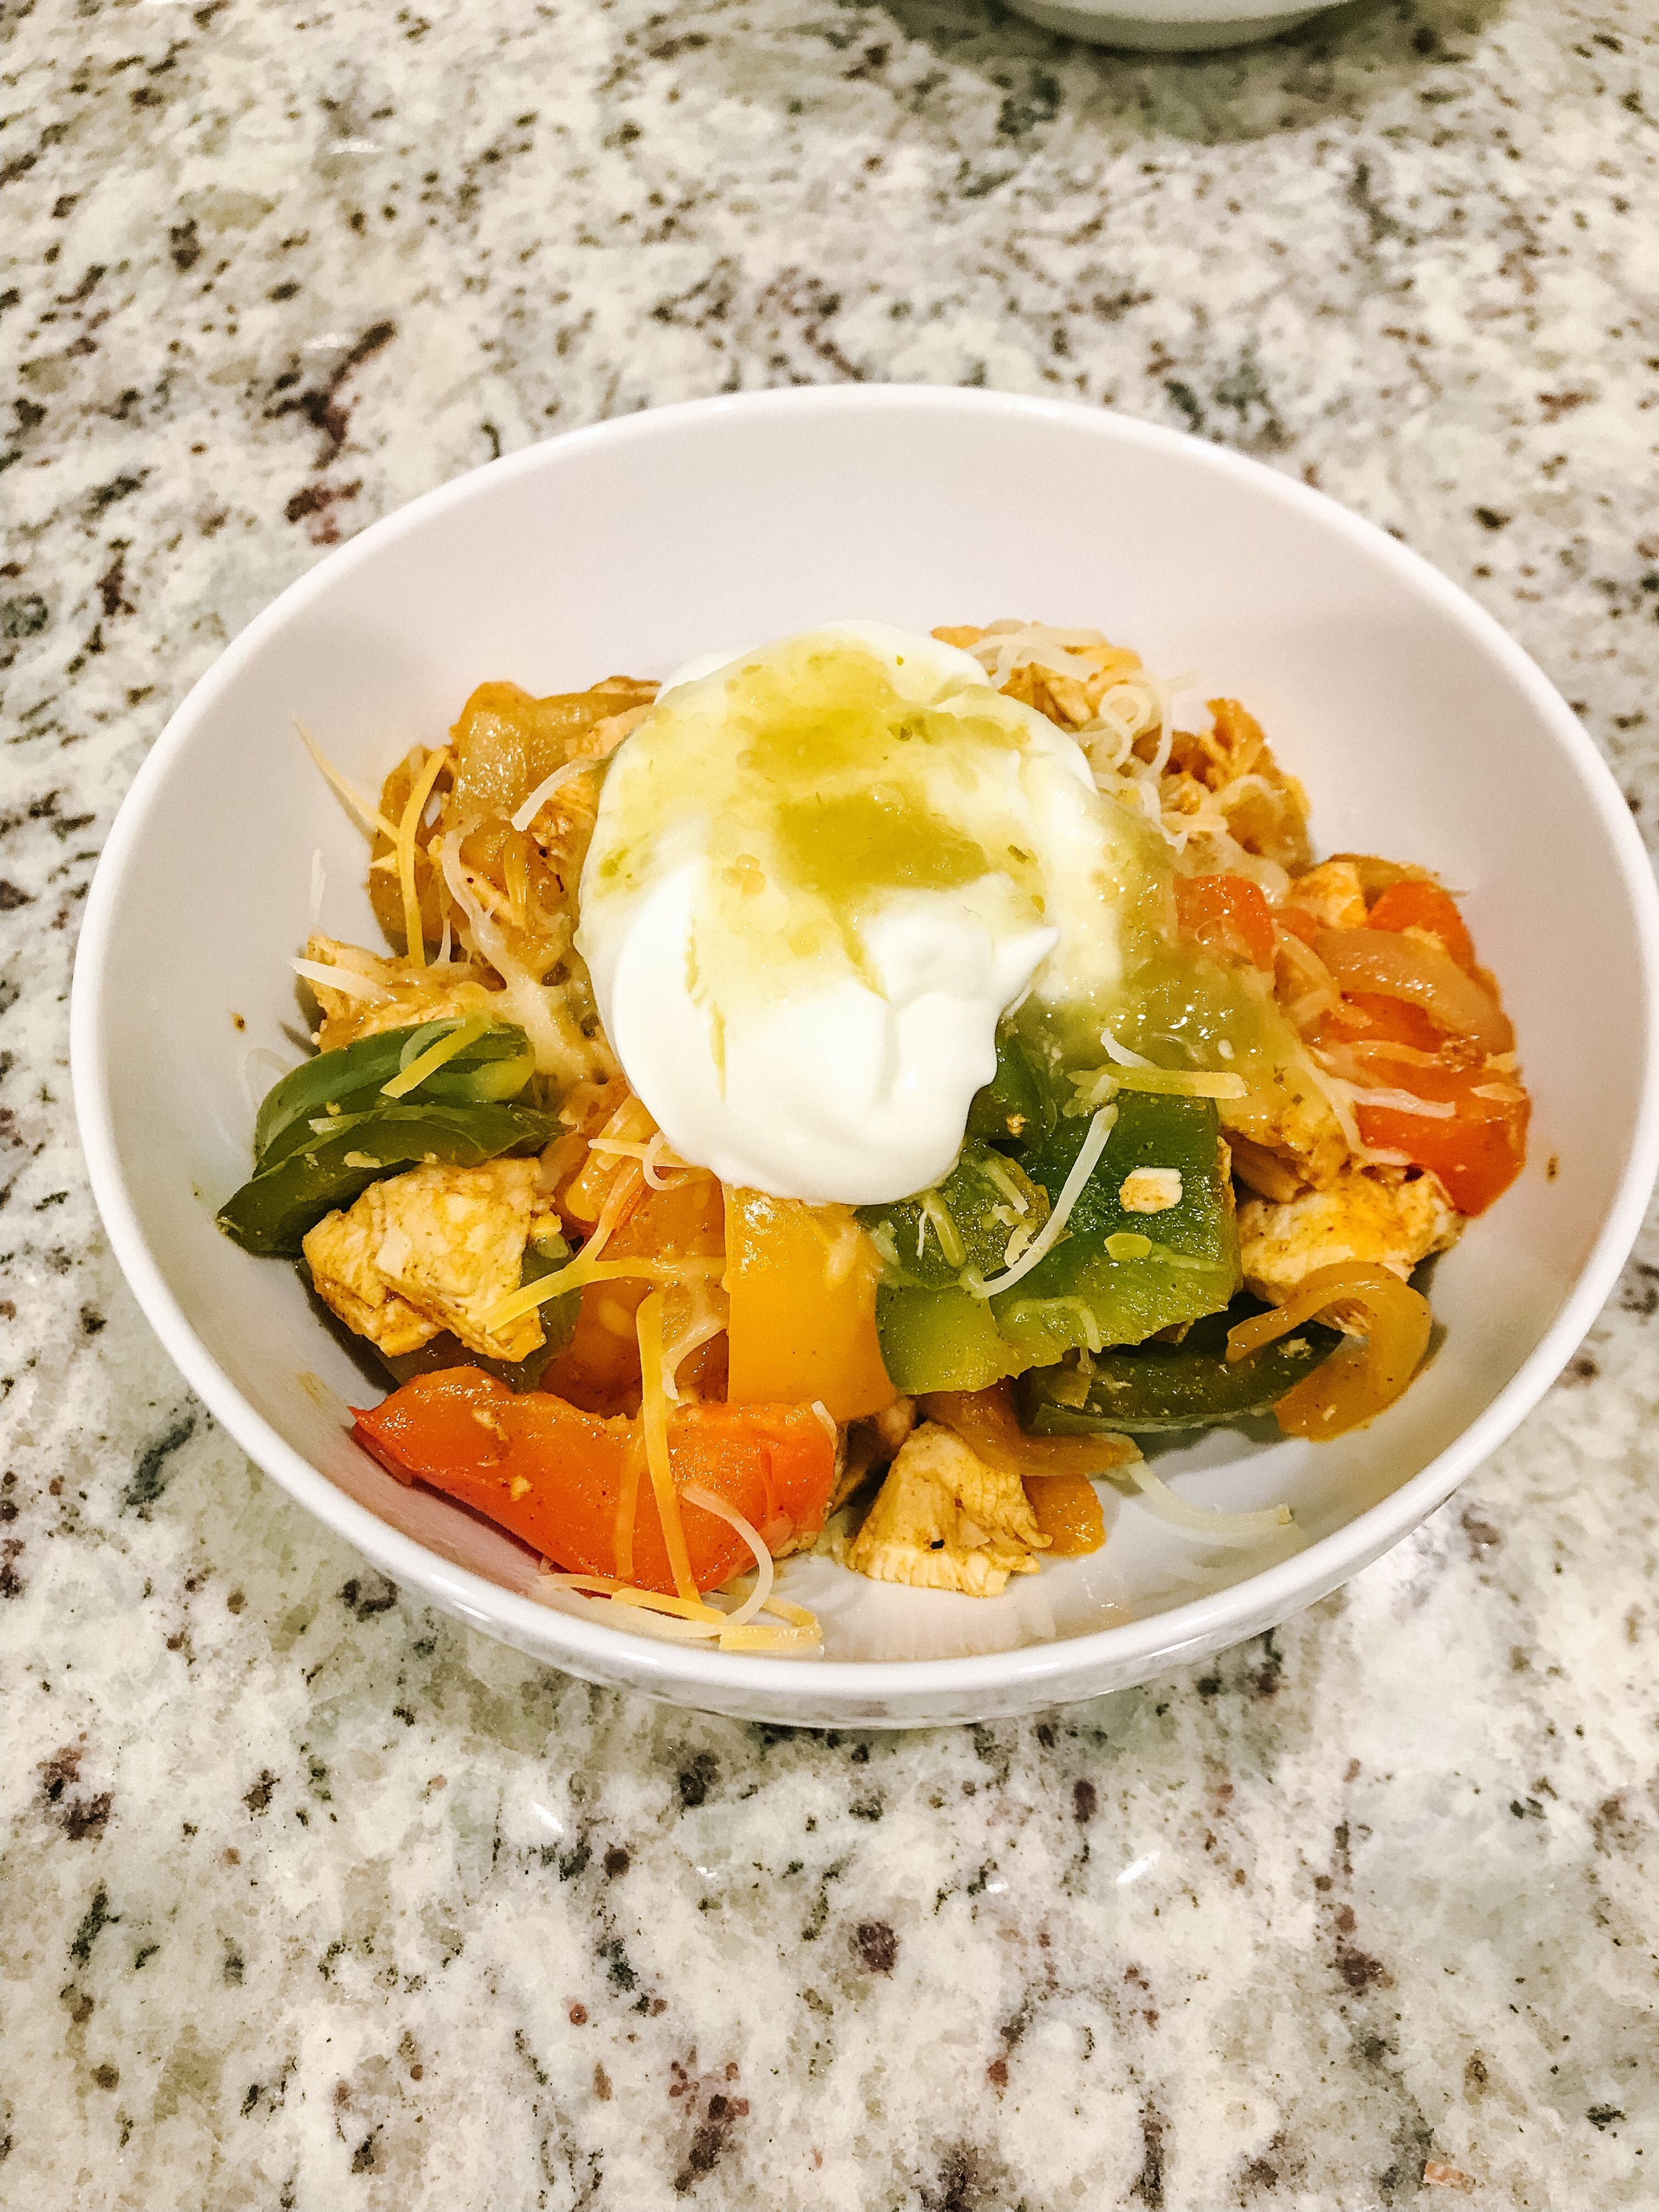 Healthy Lifestyle Food and Exercise Inspiration: Enchilada Chicken Rice Bowl